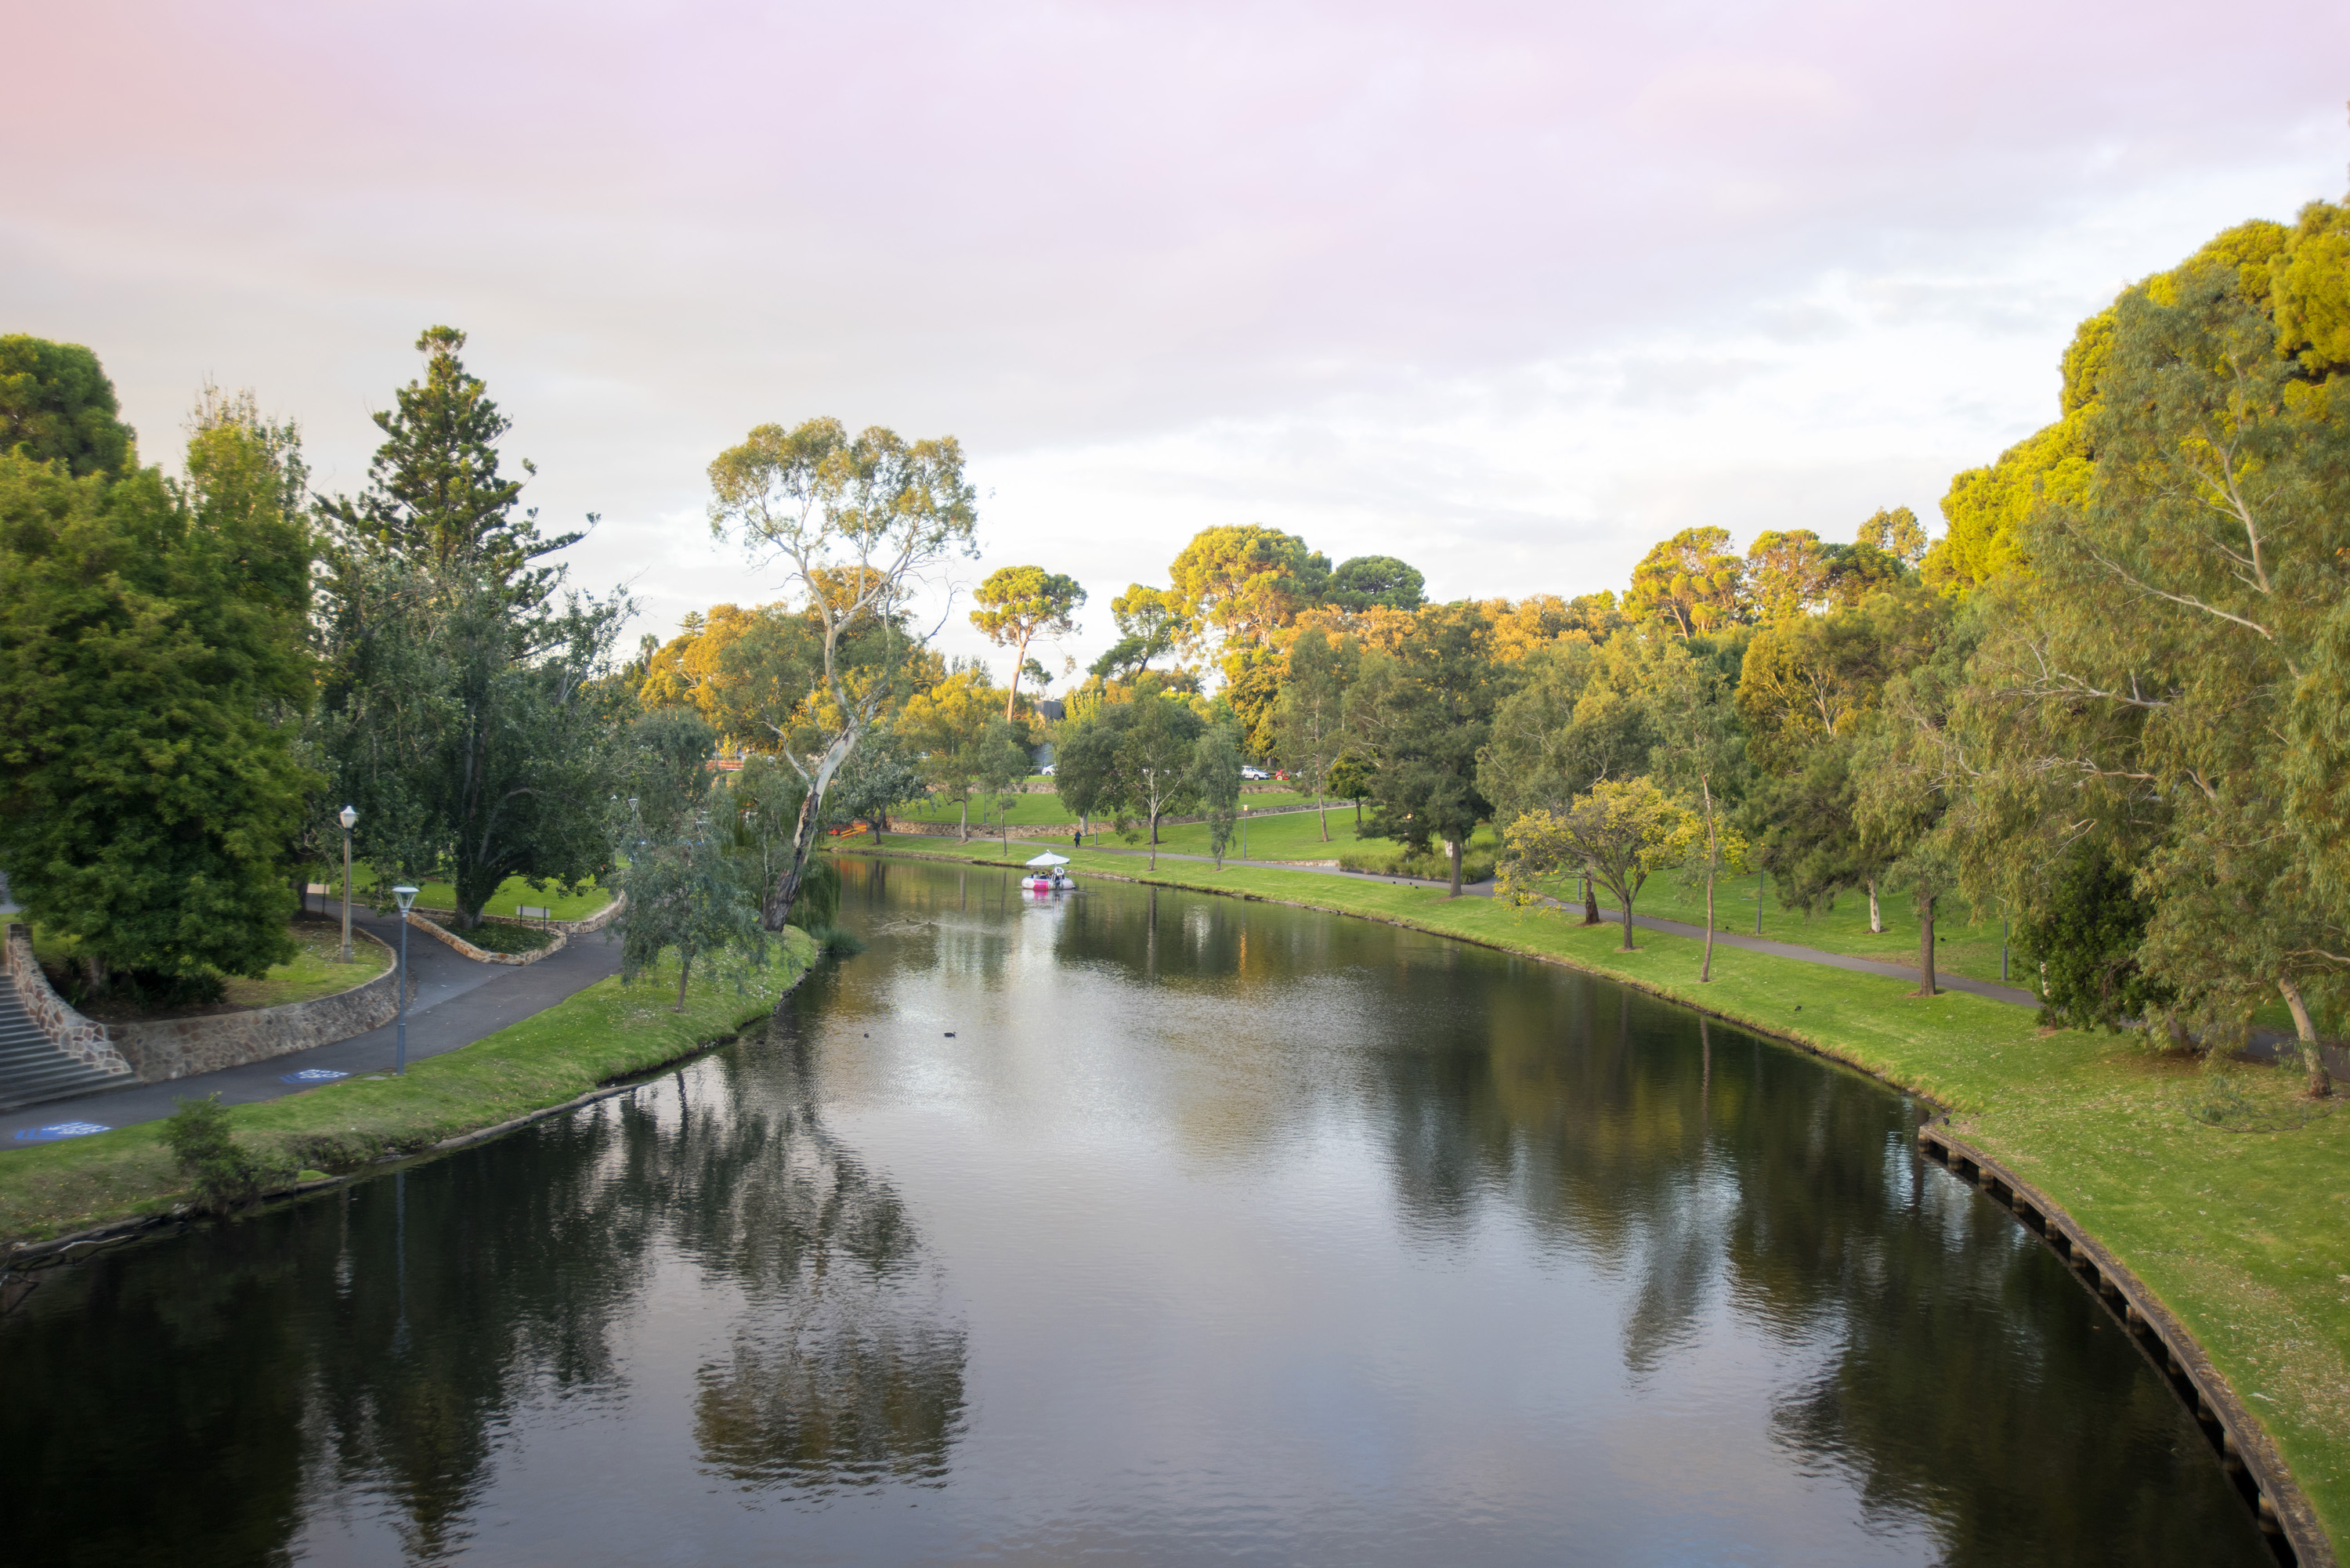 Reflections in the tranquil Torrens River in Adelaide, Australia of the surrounding leafy green trees with a footpath following the bank